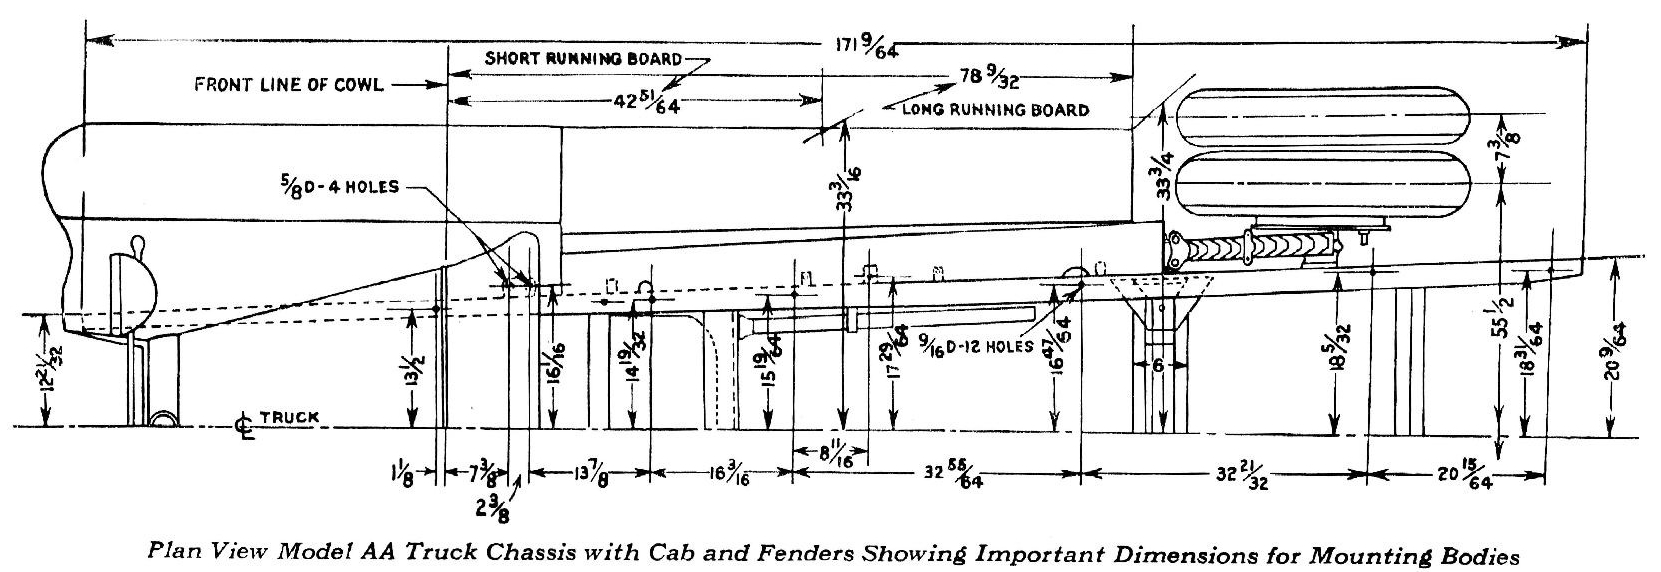 Wiring Diagram 2000 Chevy S10 Pick